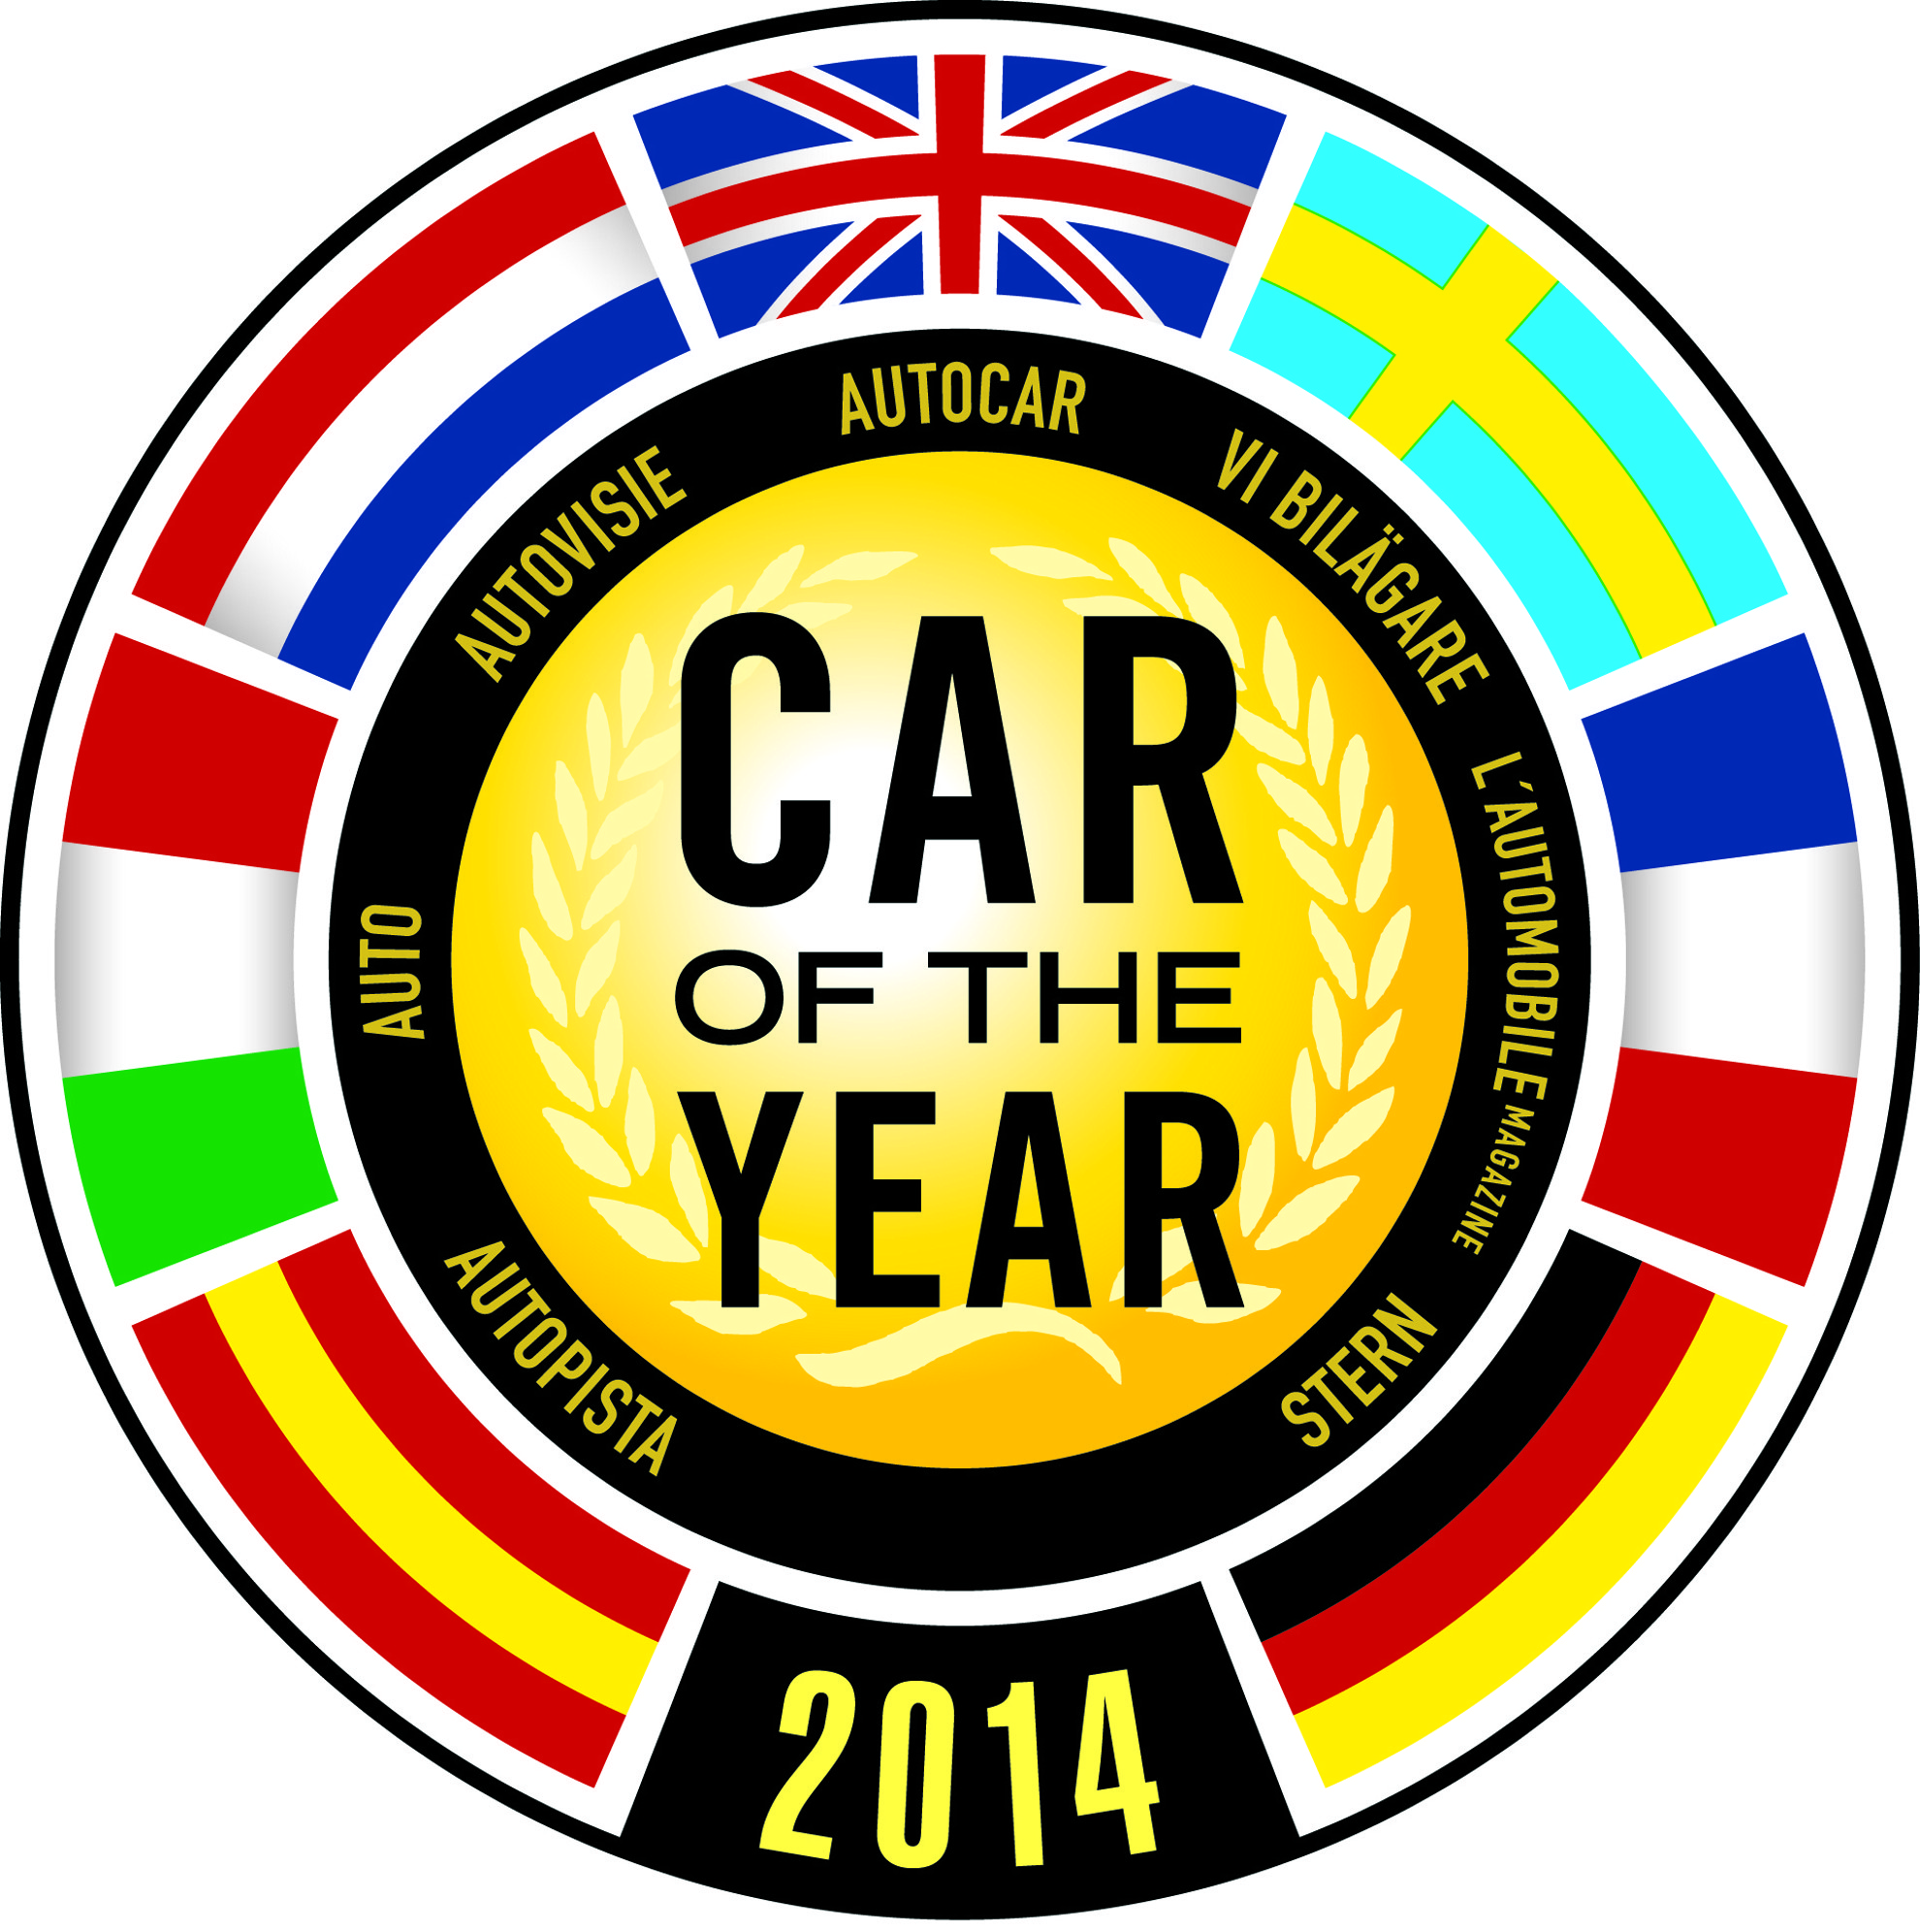 Car-of-the-year-2014